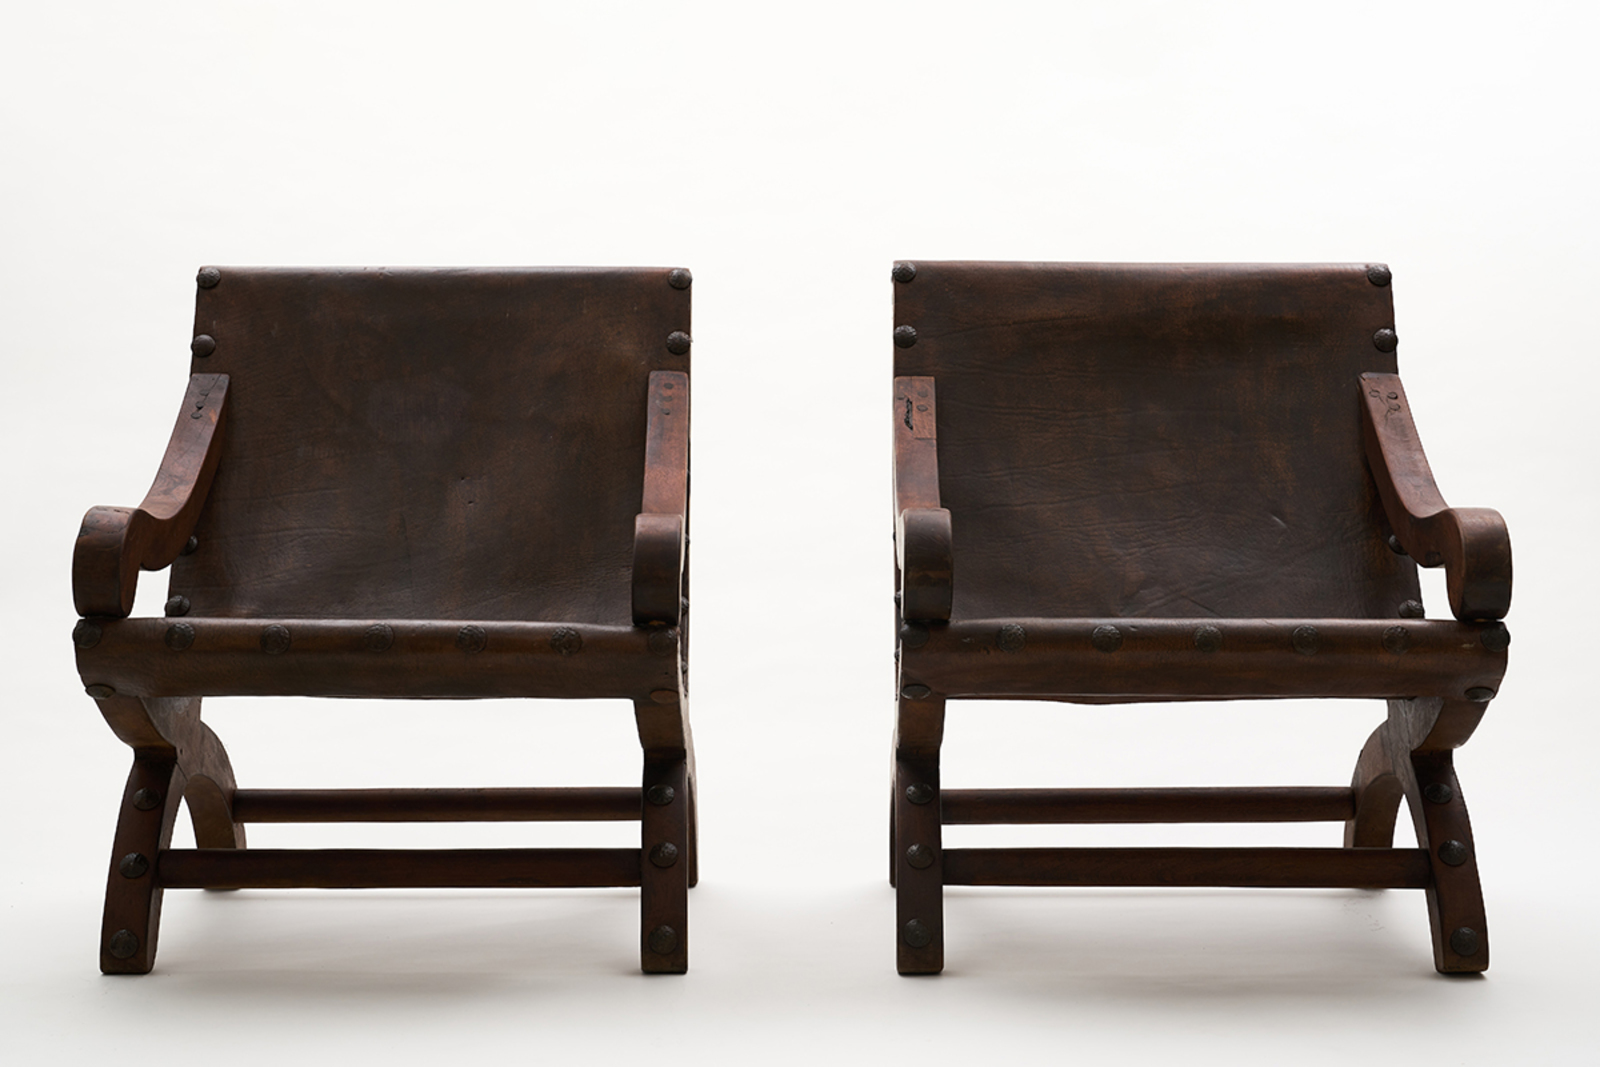 Miguelito chairs, 1960, wood, leather, iron nails, 80 x 72 x 90 cm each.  Courtesy of SHOP Taka Ishii Gallery, Hong Kong / Photo: Anthony Kar-Long Fan